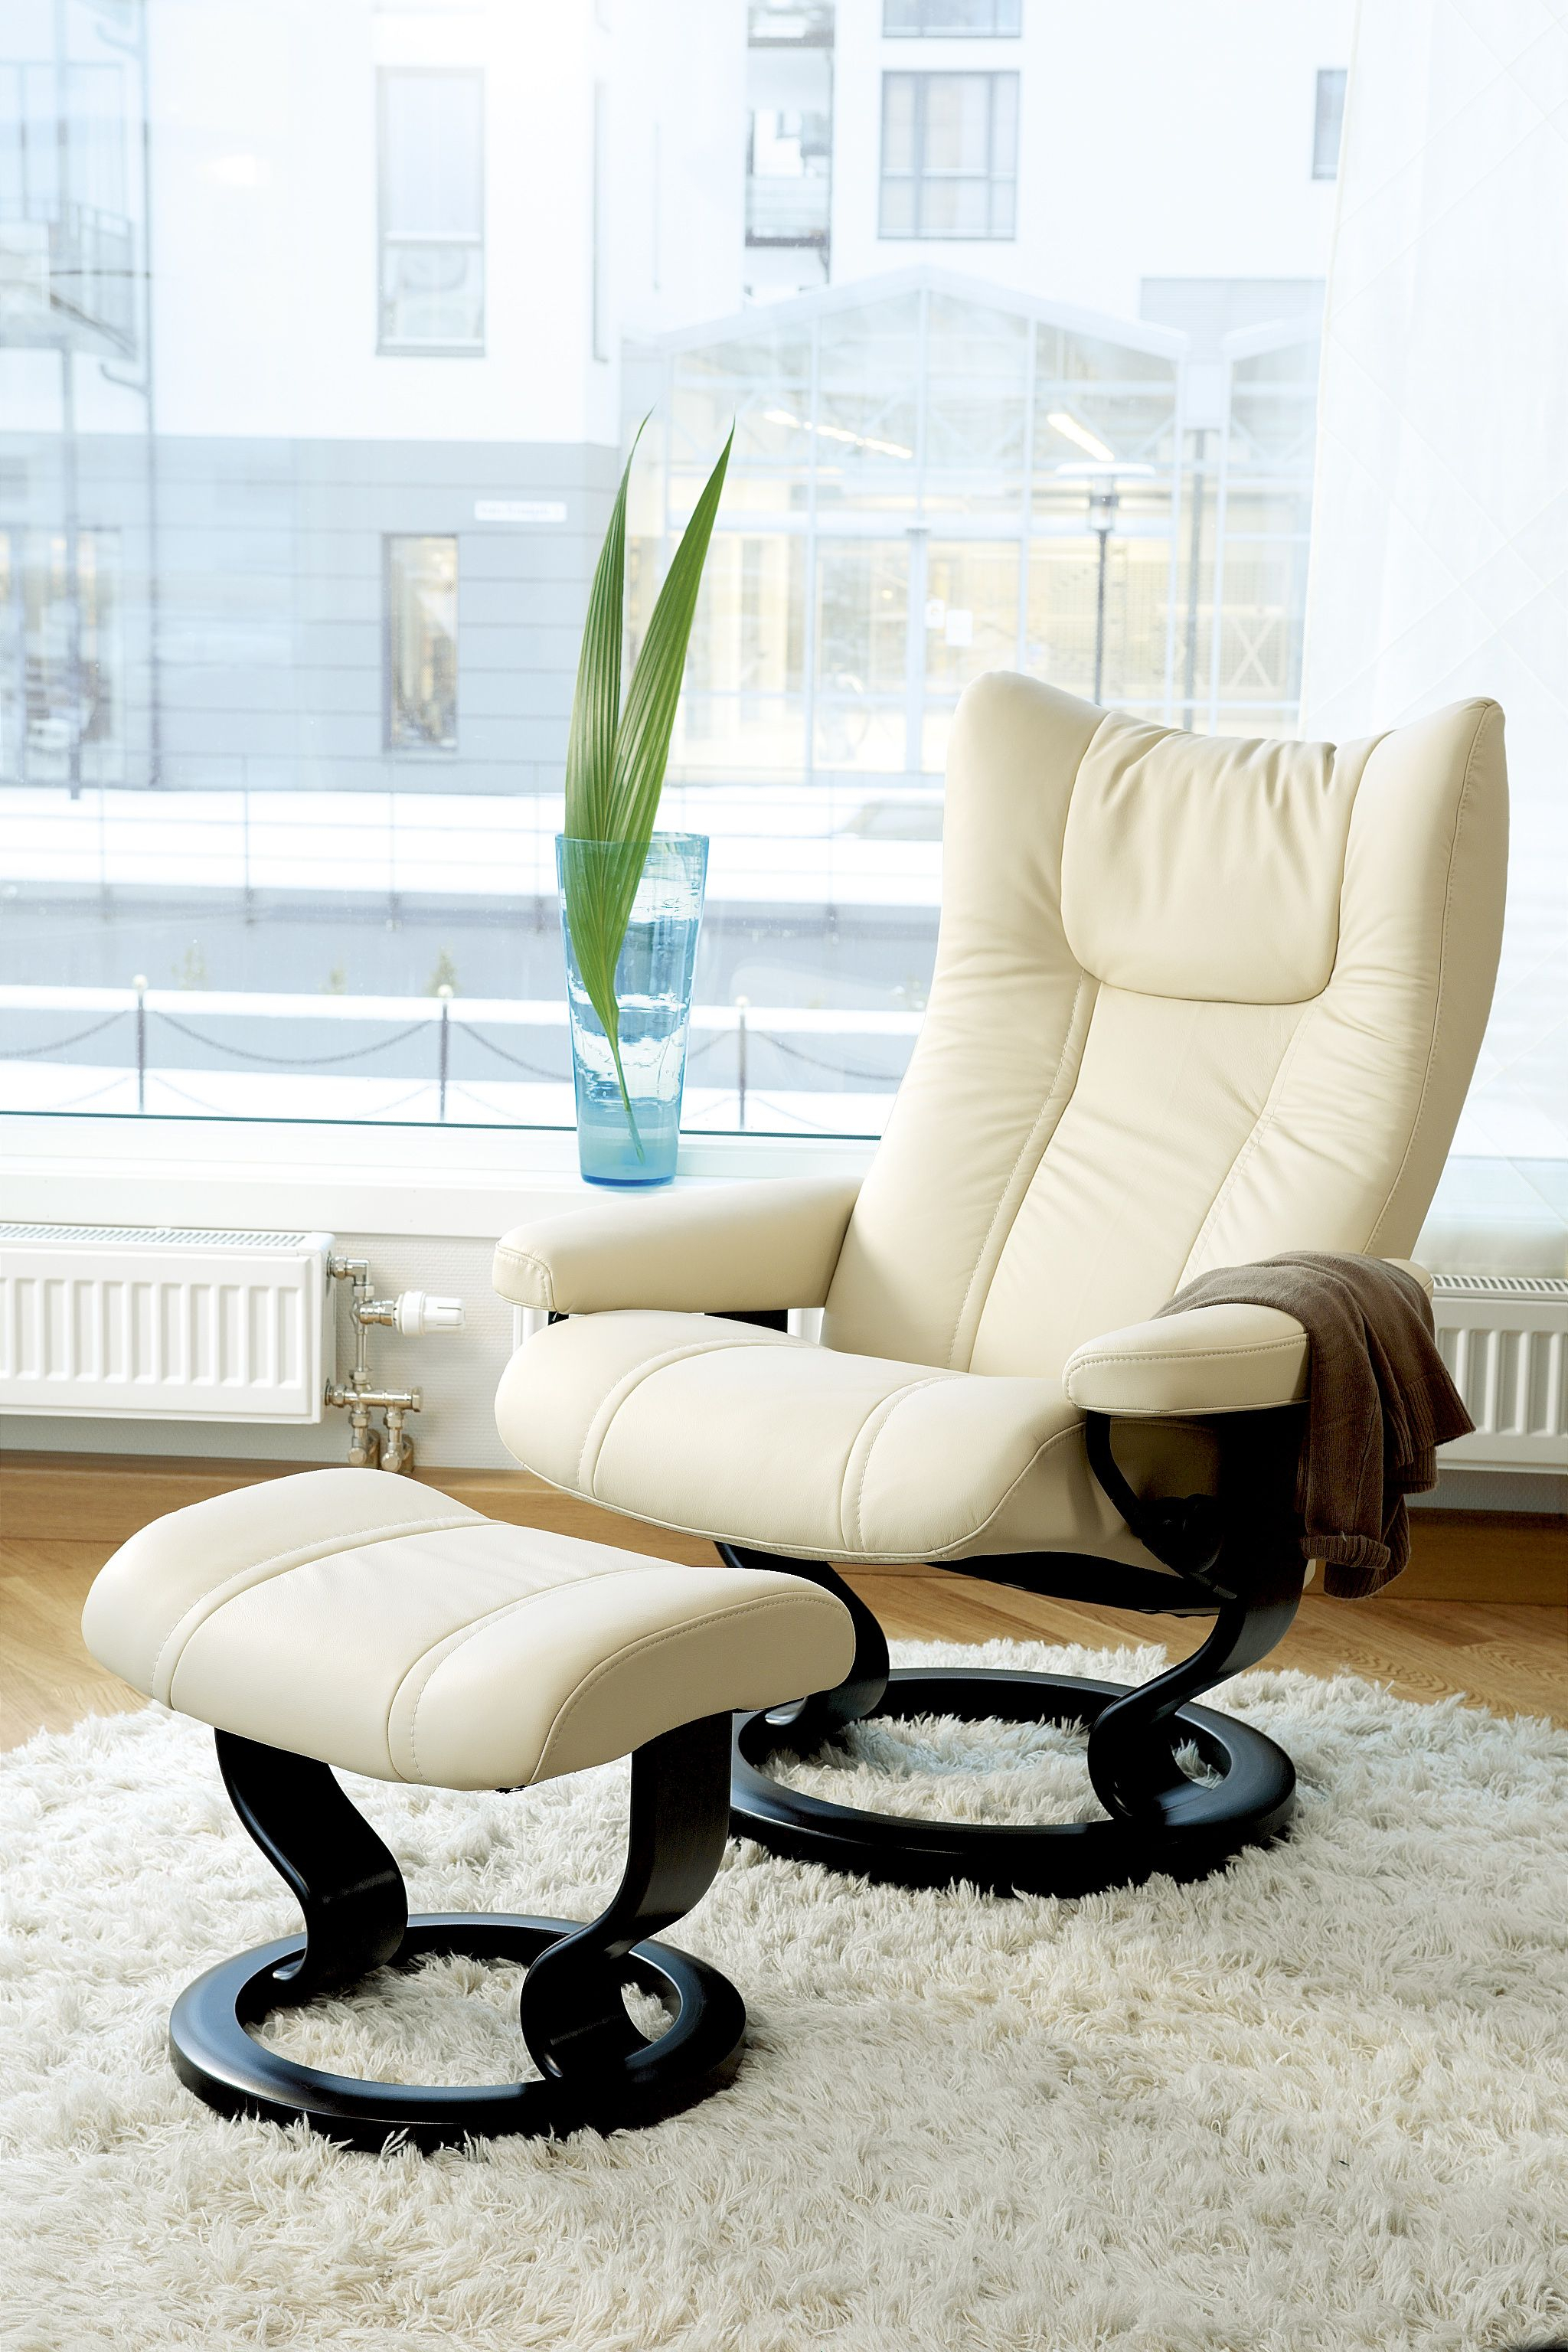 A Stylish Cream Recliner And Ottoman Perfect For The Modern Pertaining To Katrina Beige Swivel Glider Chairs (Image 1 of 20)